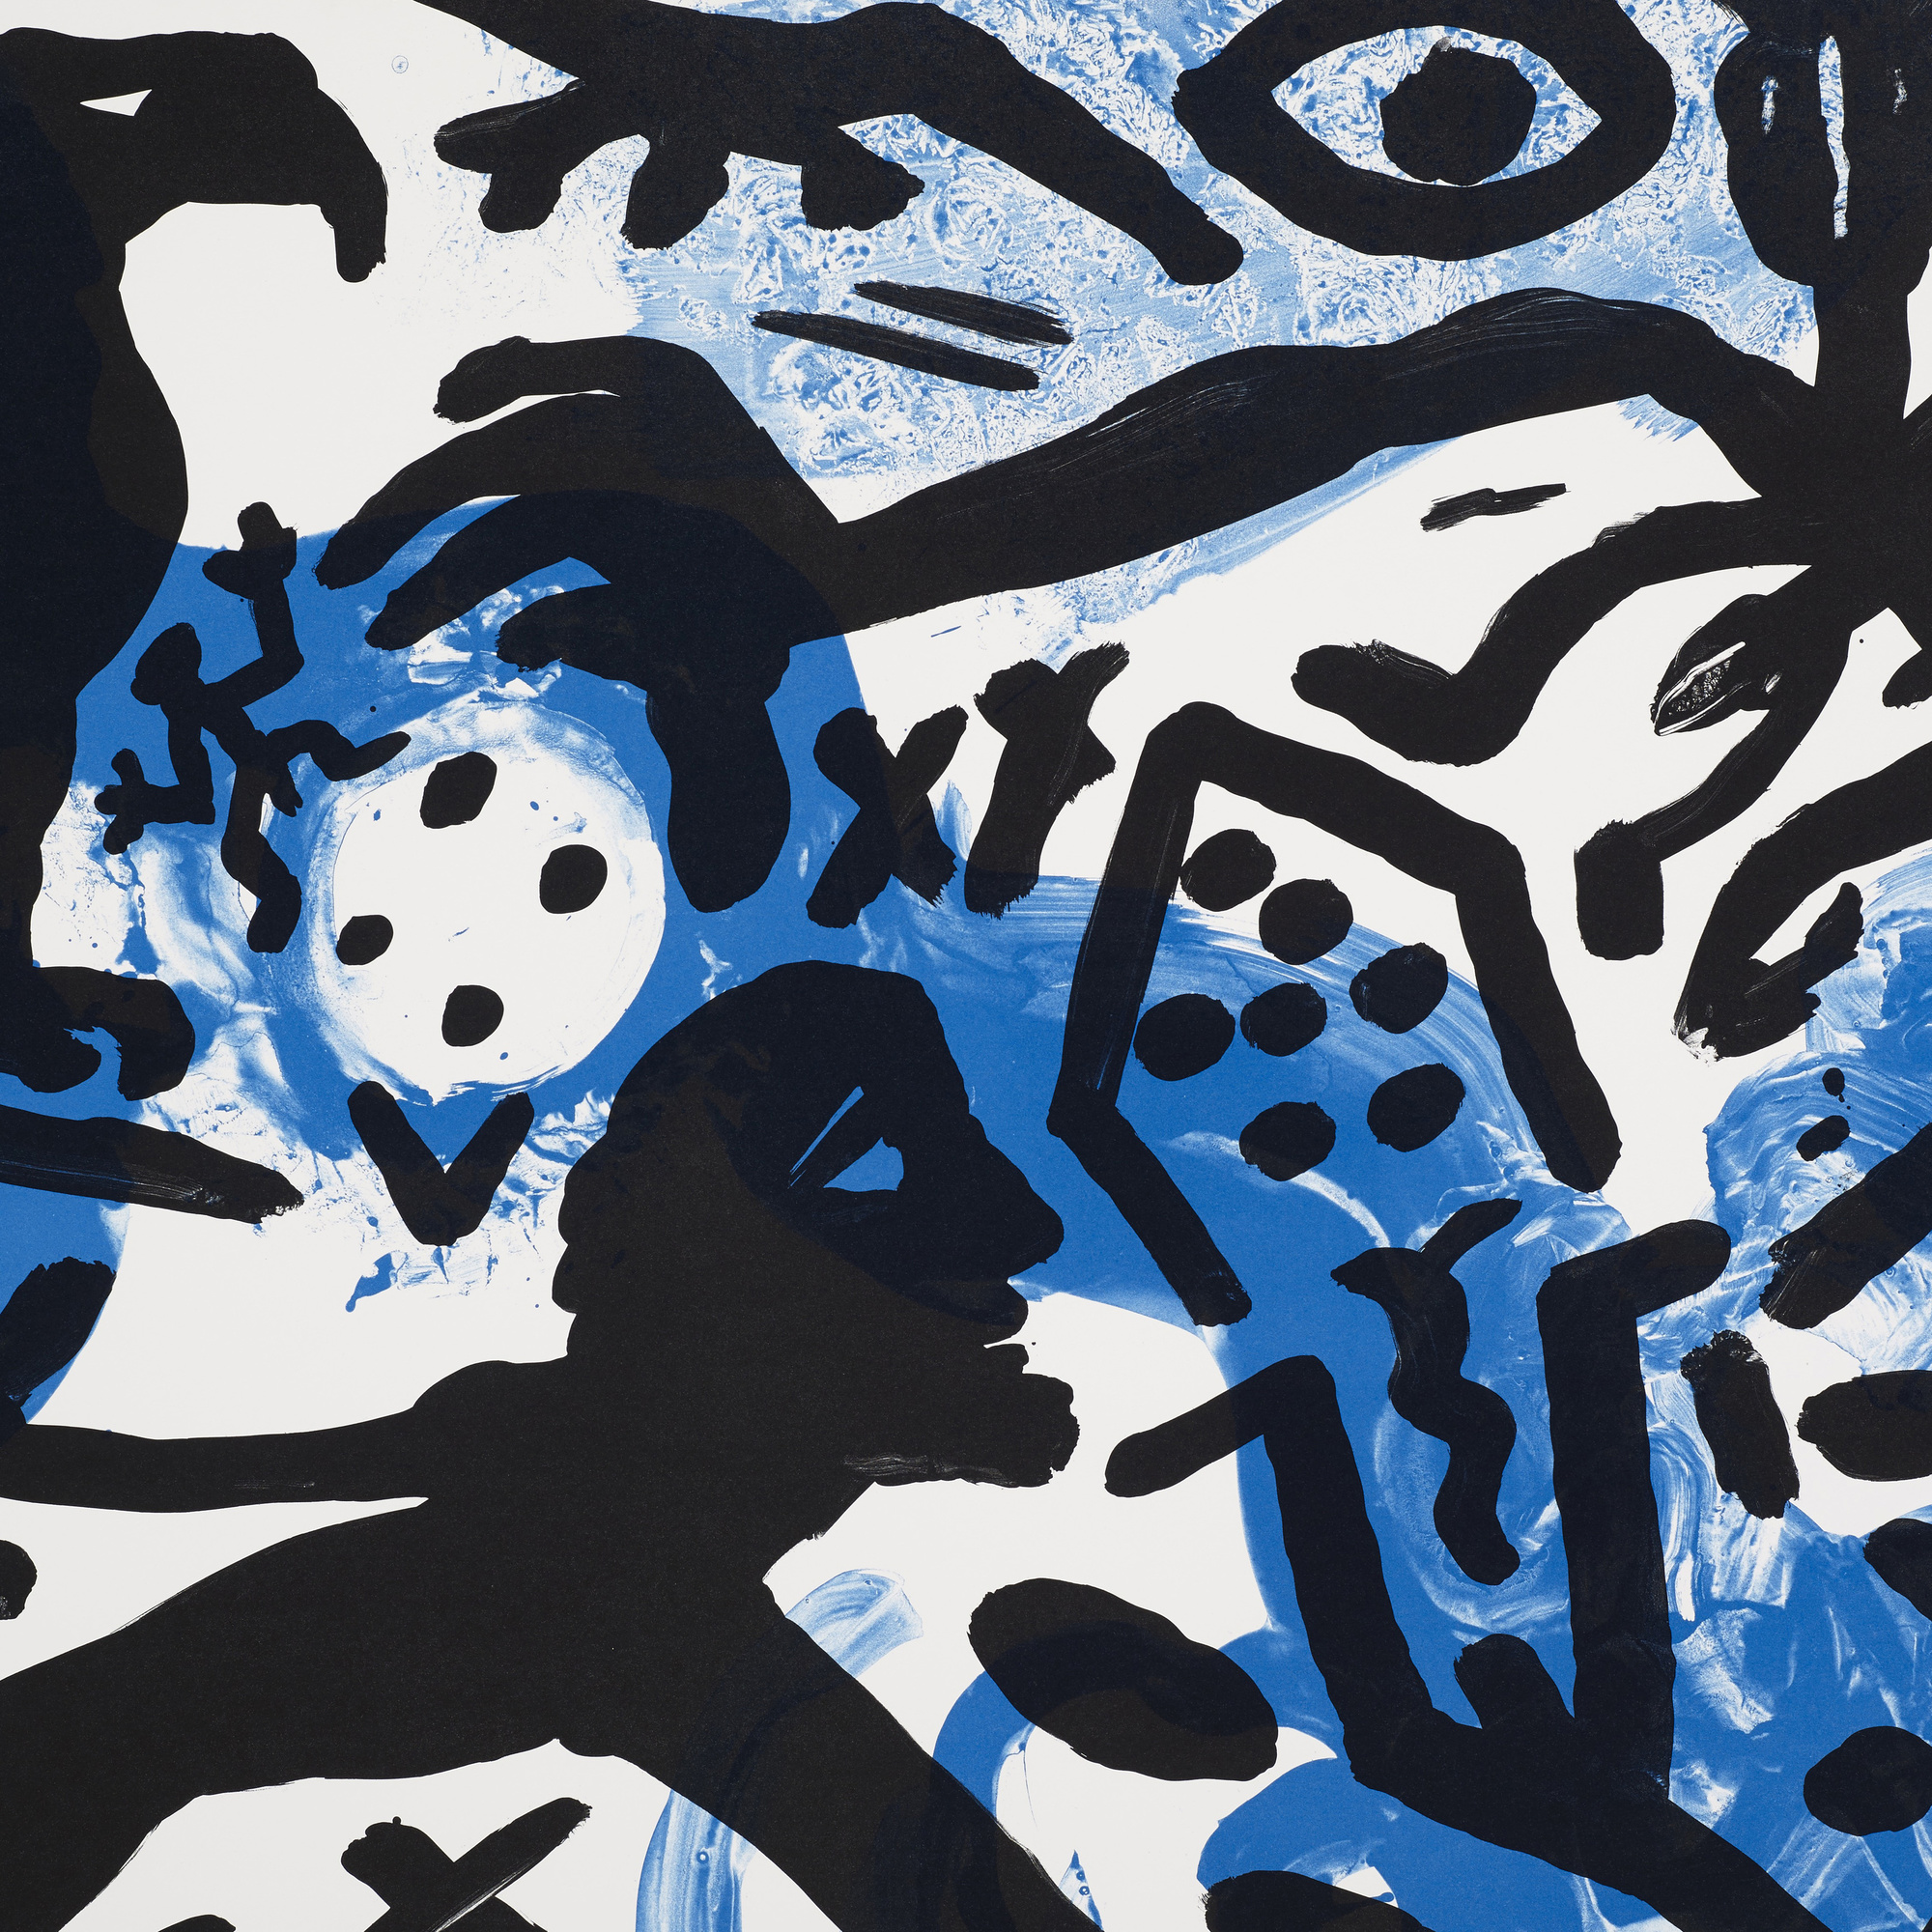 219: A. R. Penck / The Situation Now (Night) (2 of 3)